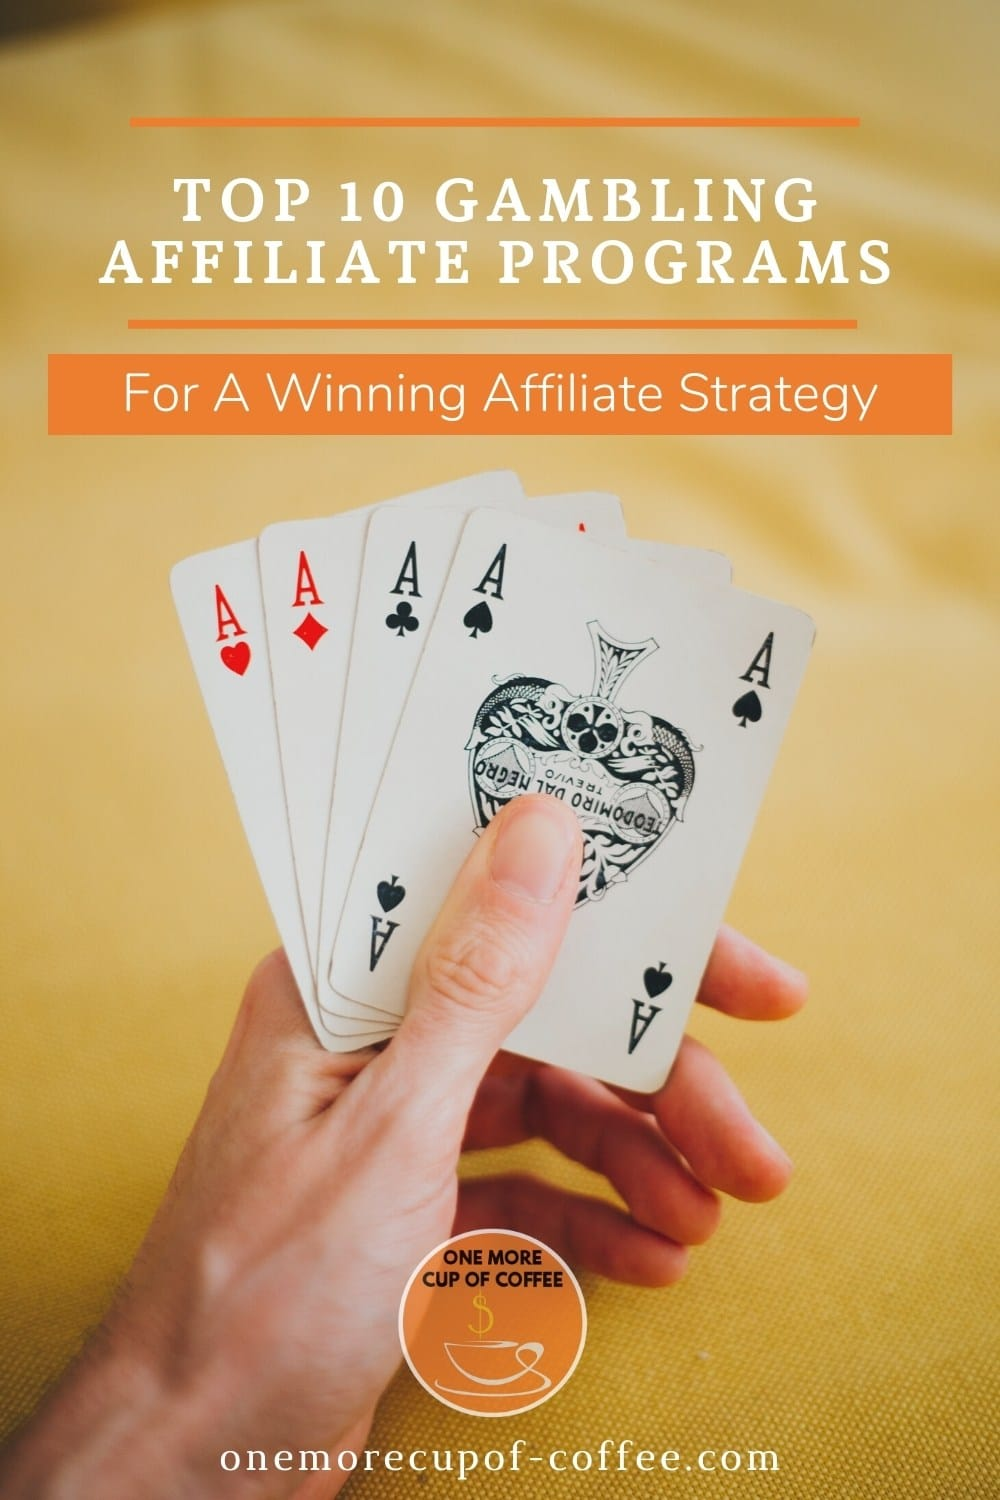 """hand holding out four aces against a yellow background, with text overlay Top 10 Gambling Affiliate Programs For A Winning Affiliate Strategy"""""""